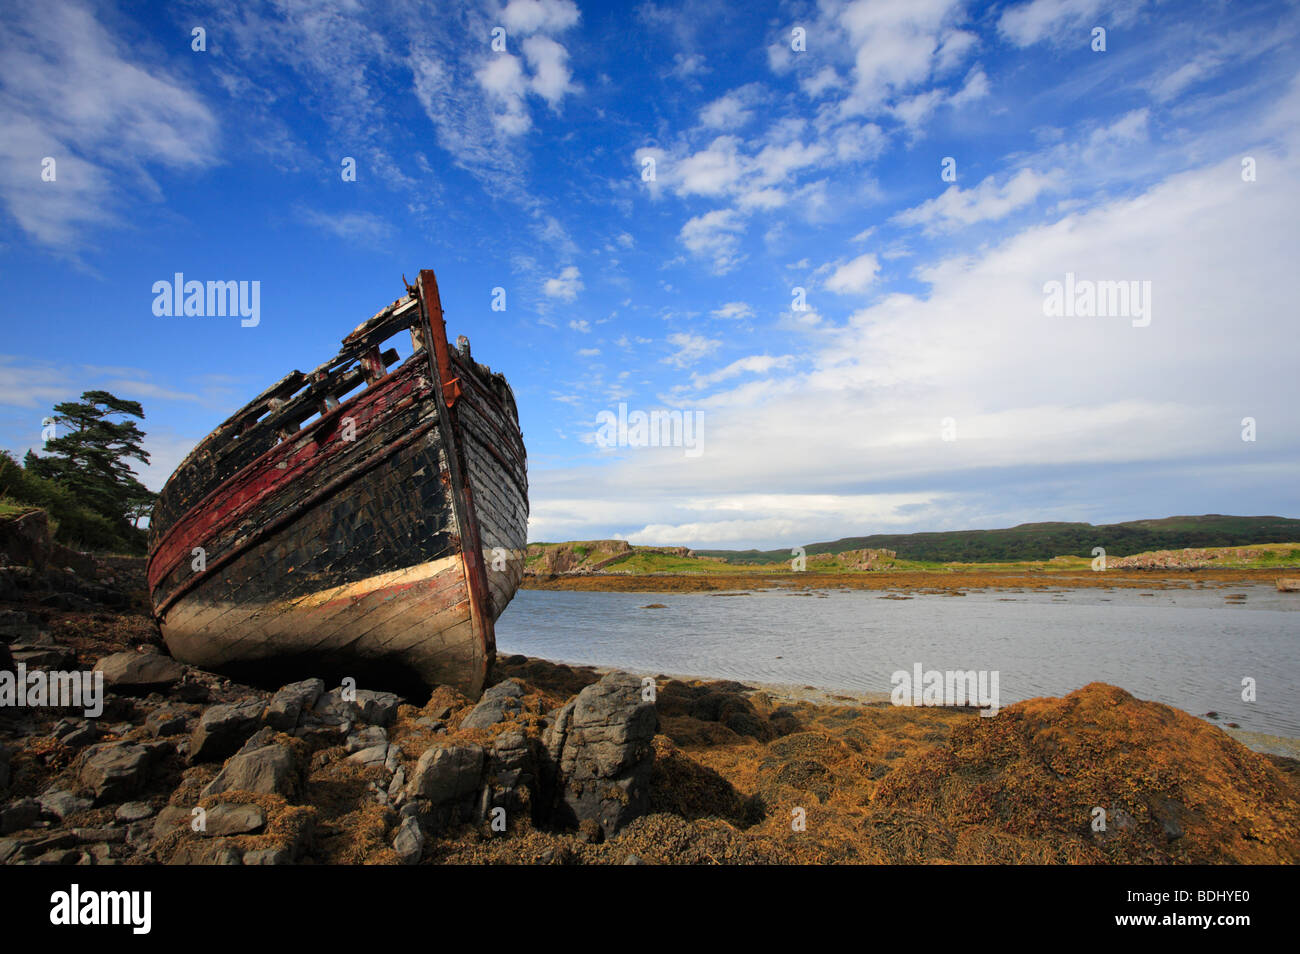 An abandoned fishing boat at Croig on the Isle of Mull, near Dervaig. - Stock Image